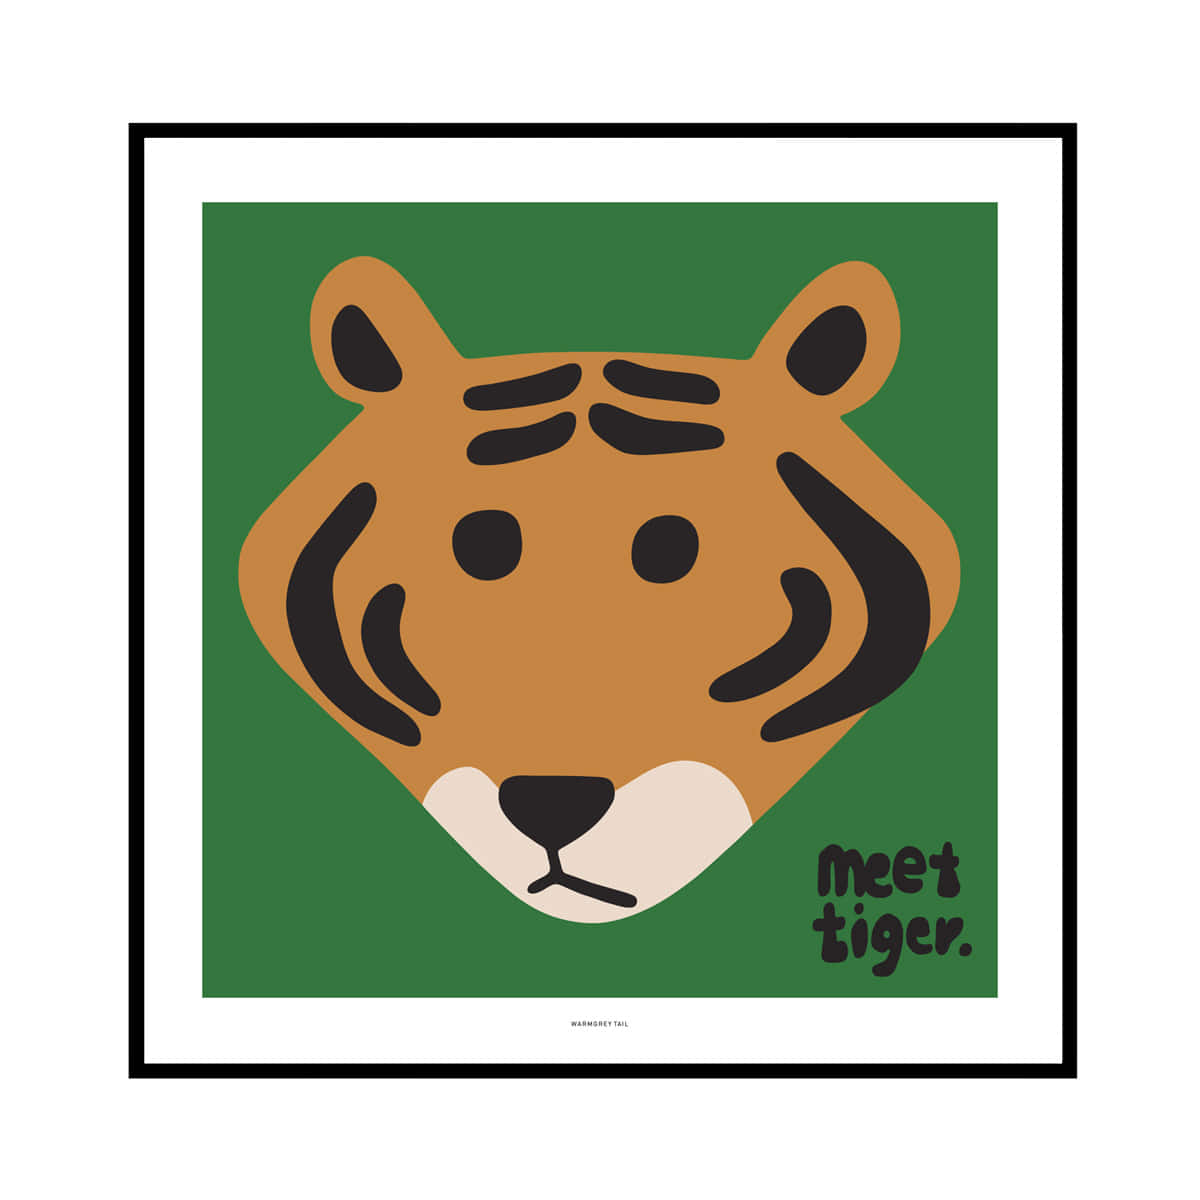 Meet Tiger - Green